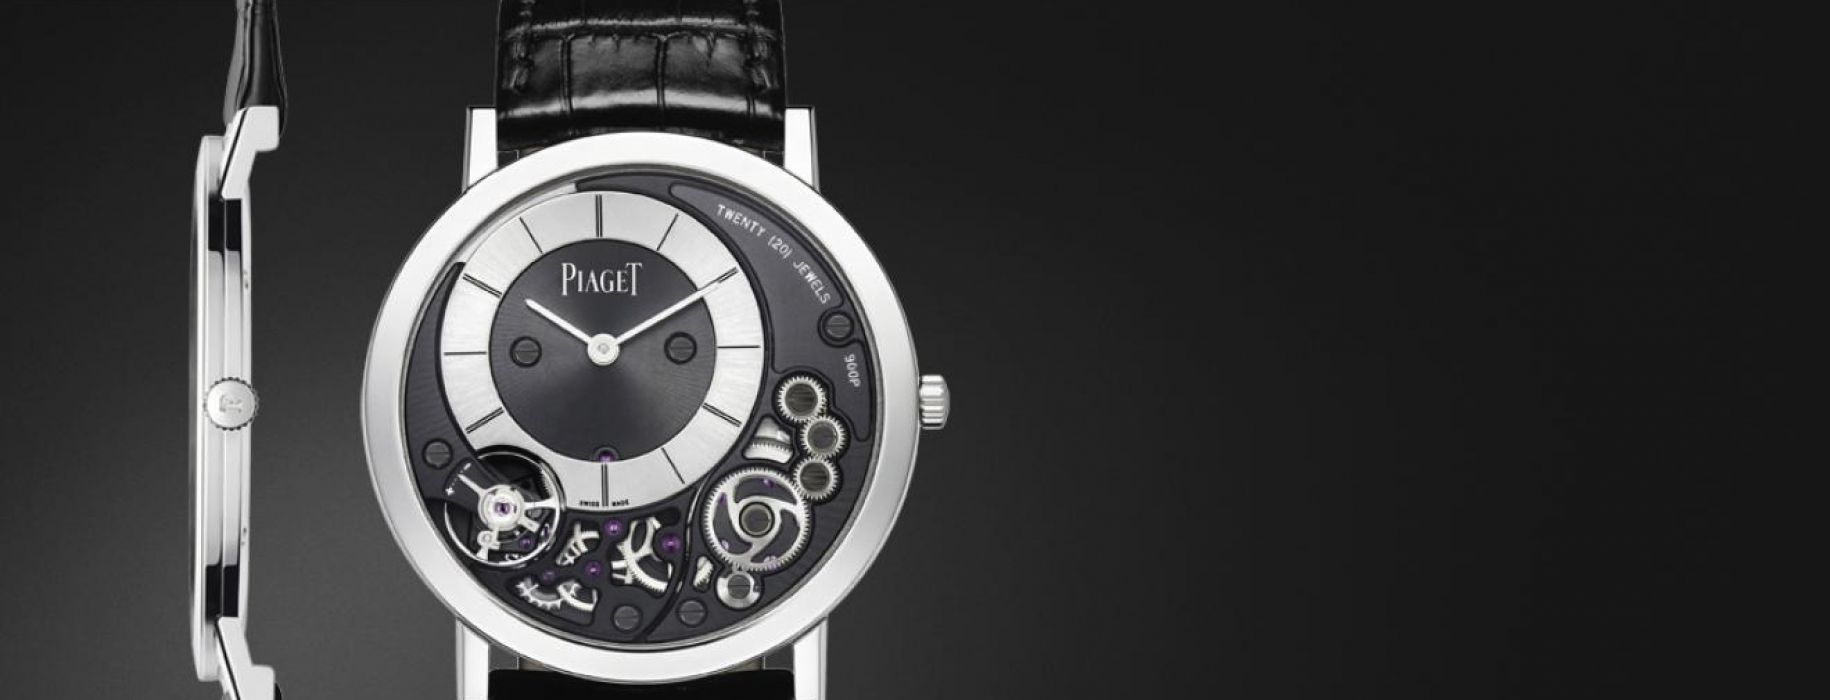 PIAGET watch time clock bokeh (1) wallpaper